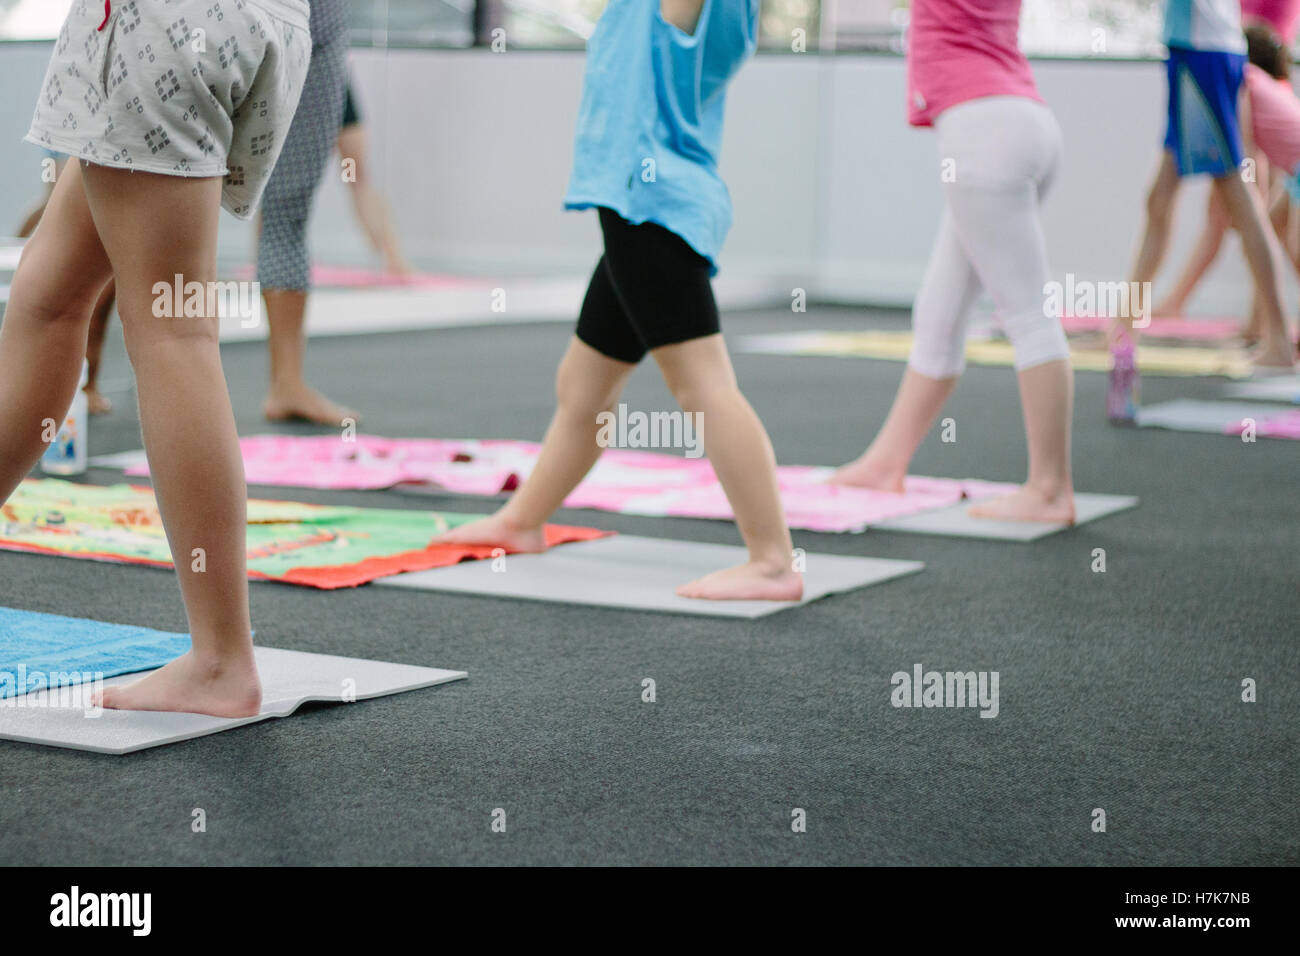 Series of photographs taken in a yoga studio. This image shows a kids yoga class. Stock Photo